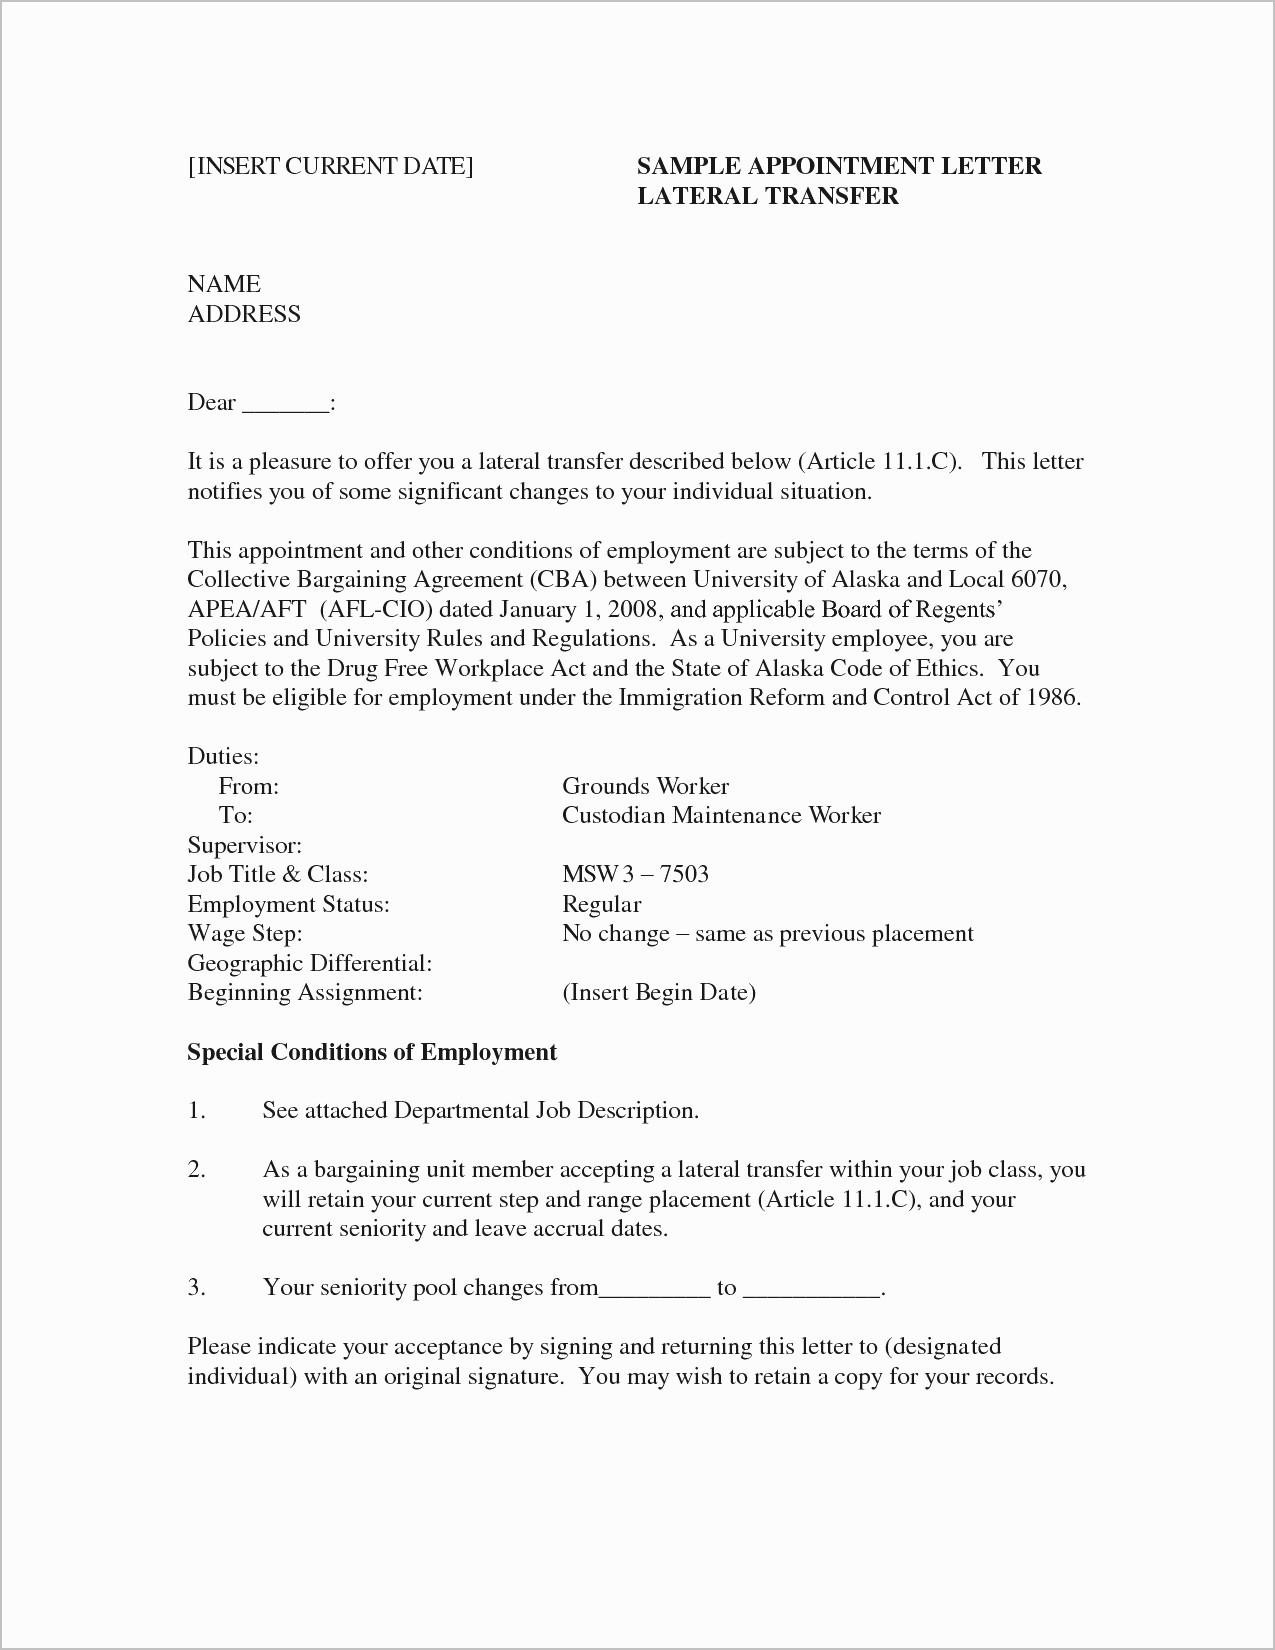 Sales Rep Resume Sample - Sales Rep Resume Examples Inspirational Sales Resumes Examples Fresh